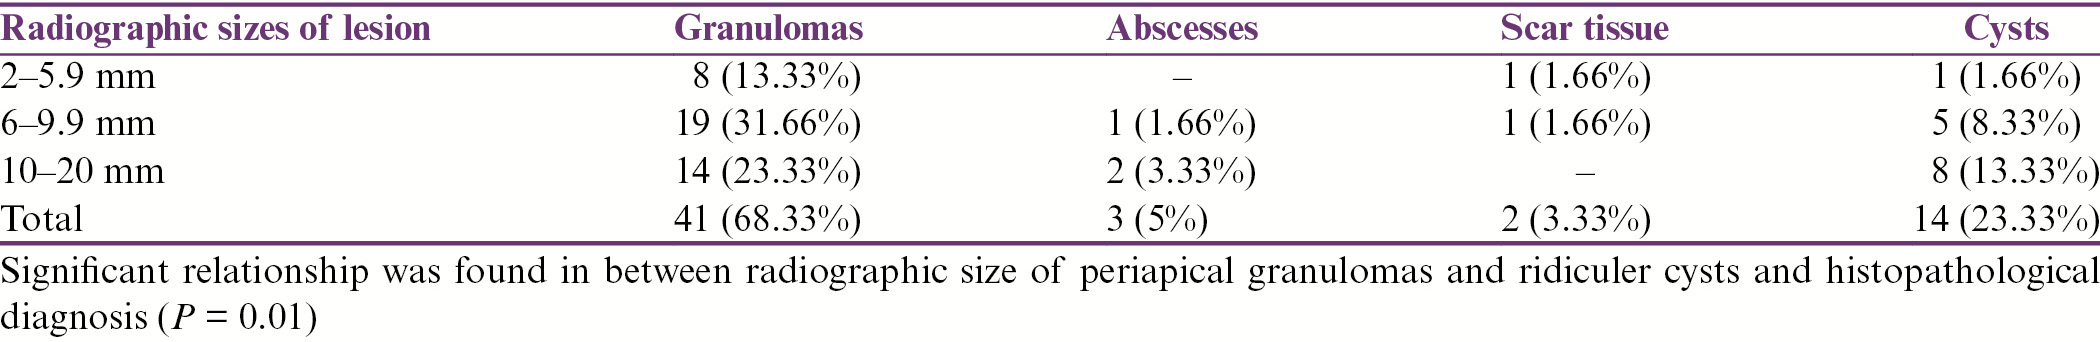 Table 2: Relationship between radiographic sizes of lesion and histopathological diagnosis